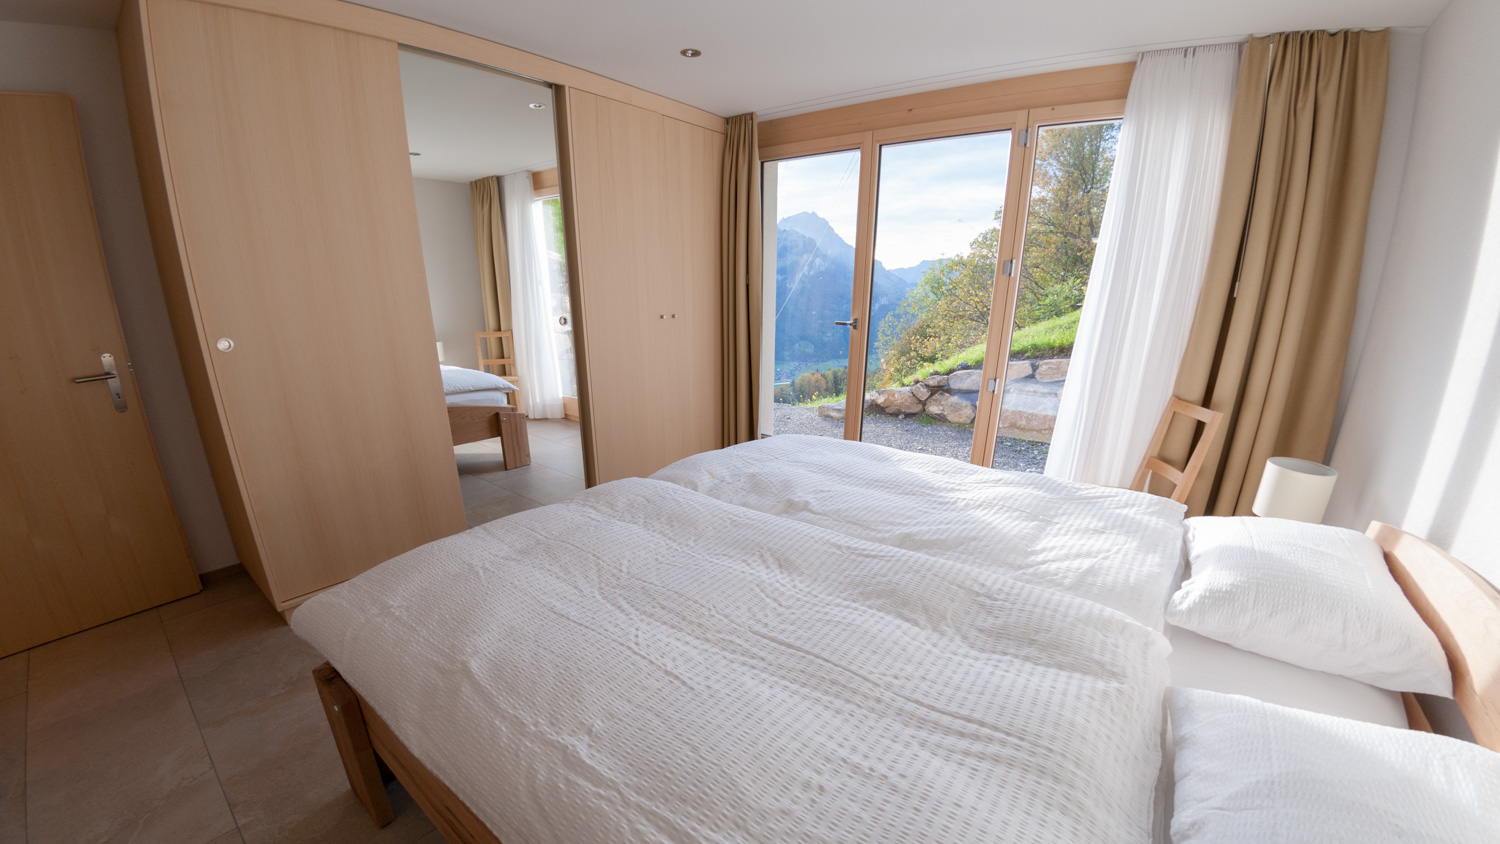 Master bedroom with view of the mountains